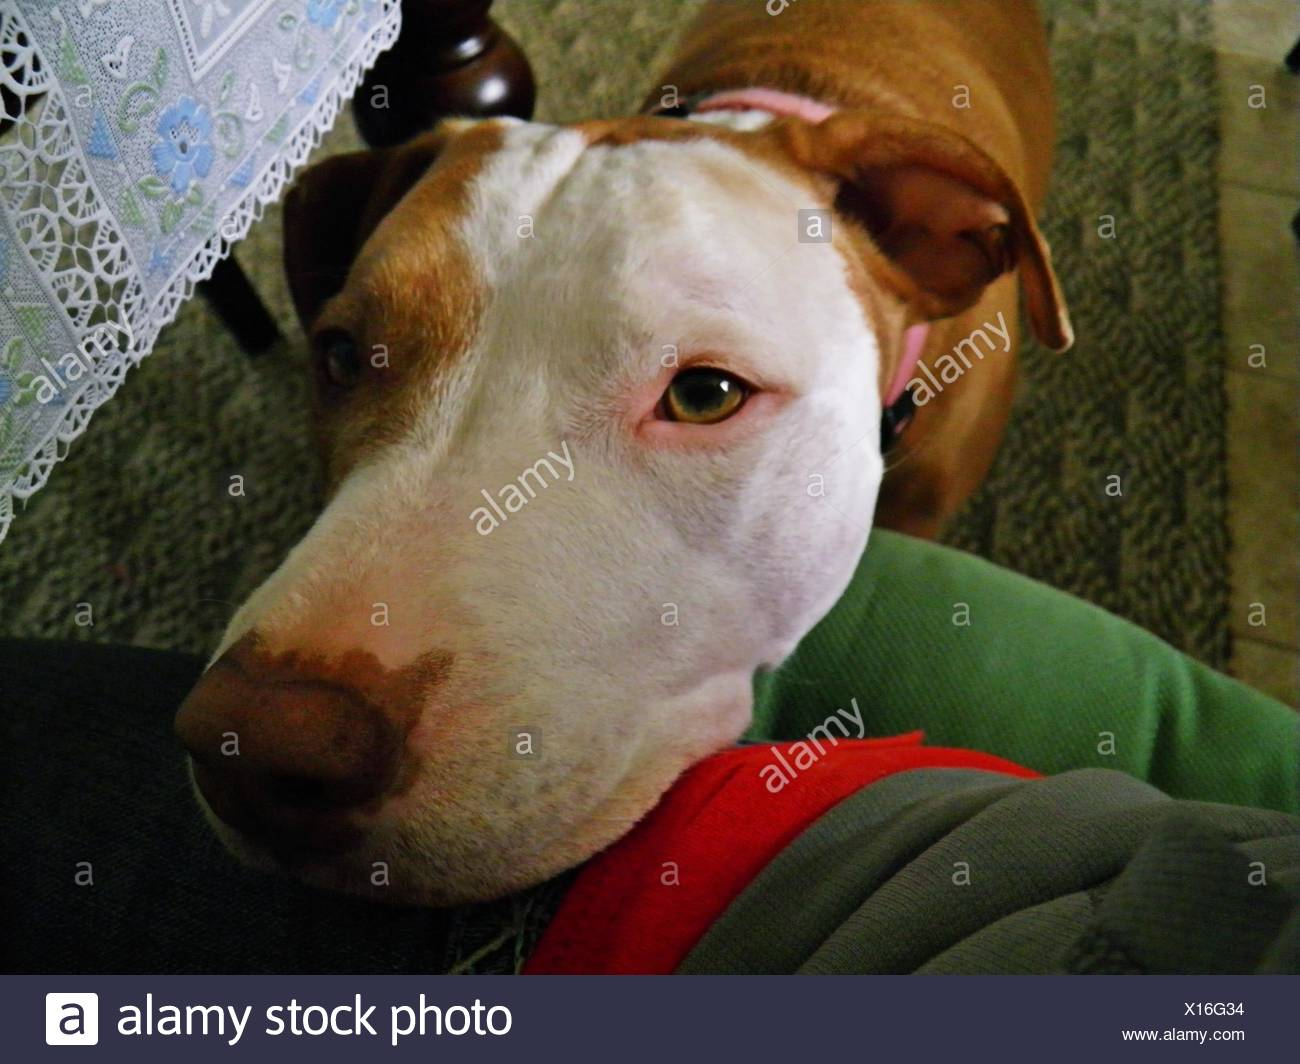 Red Nose Pitbull - Stock Image